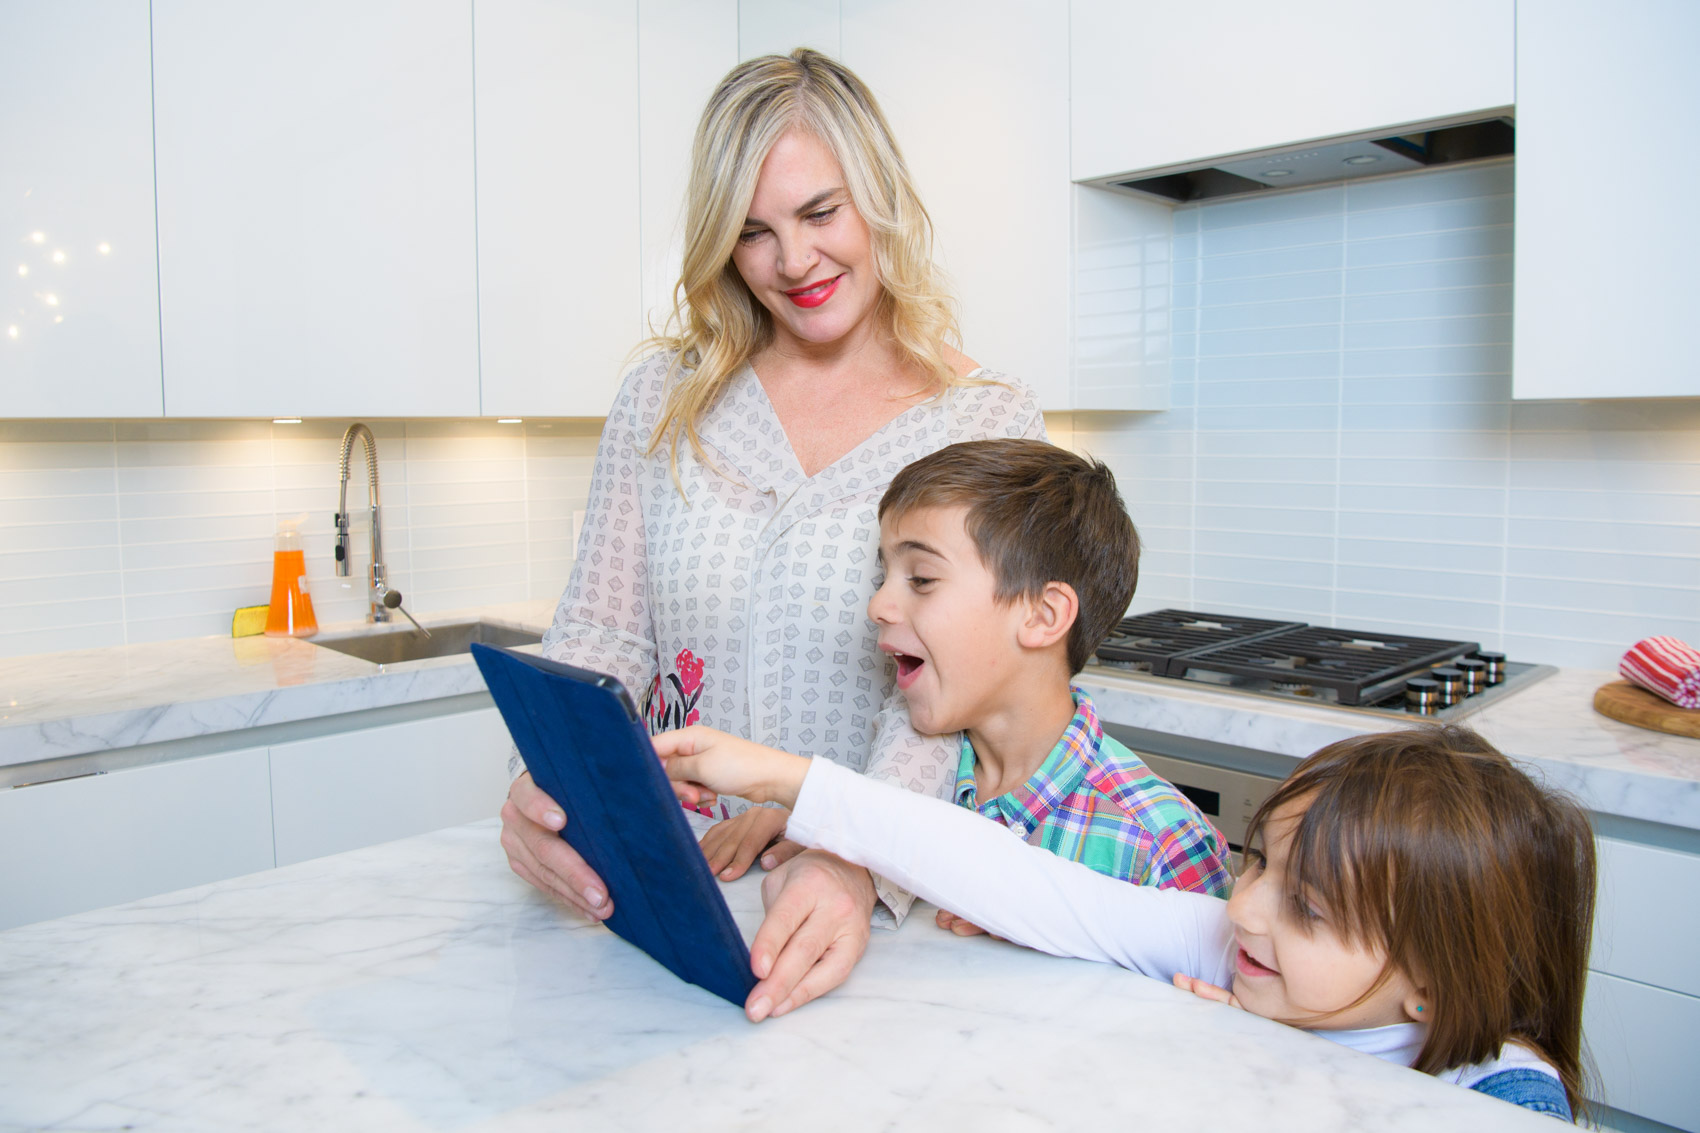 A mom holds an ipad with two children pointing at it in a kitchen